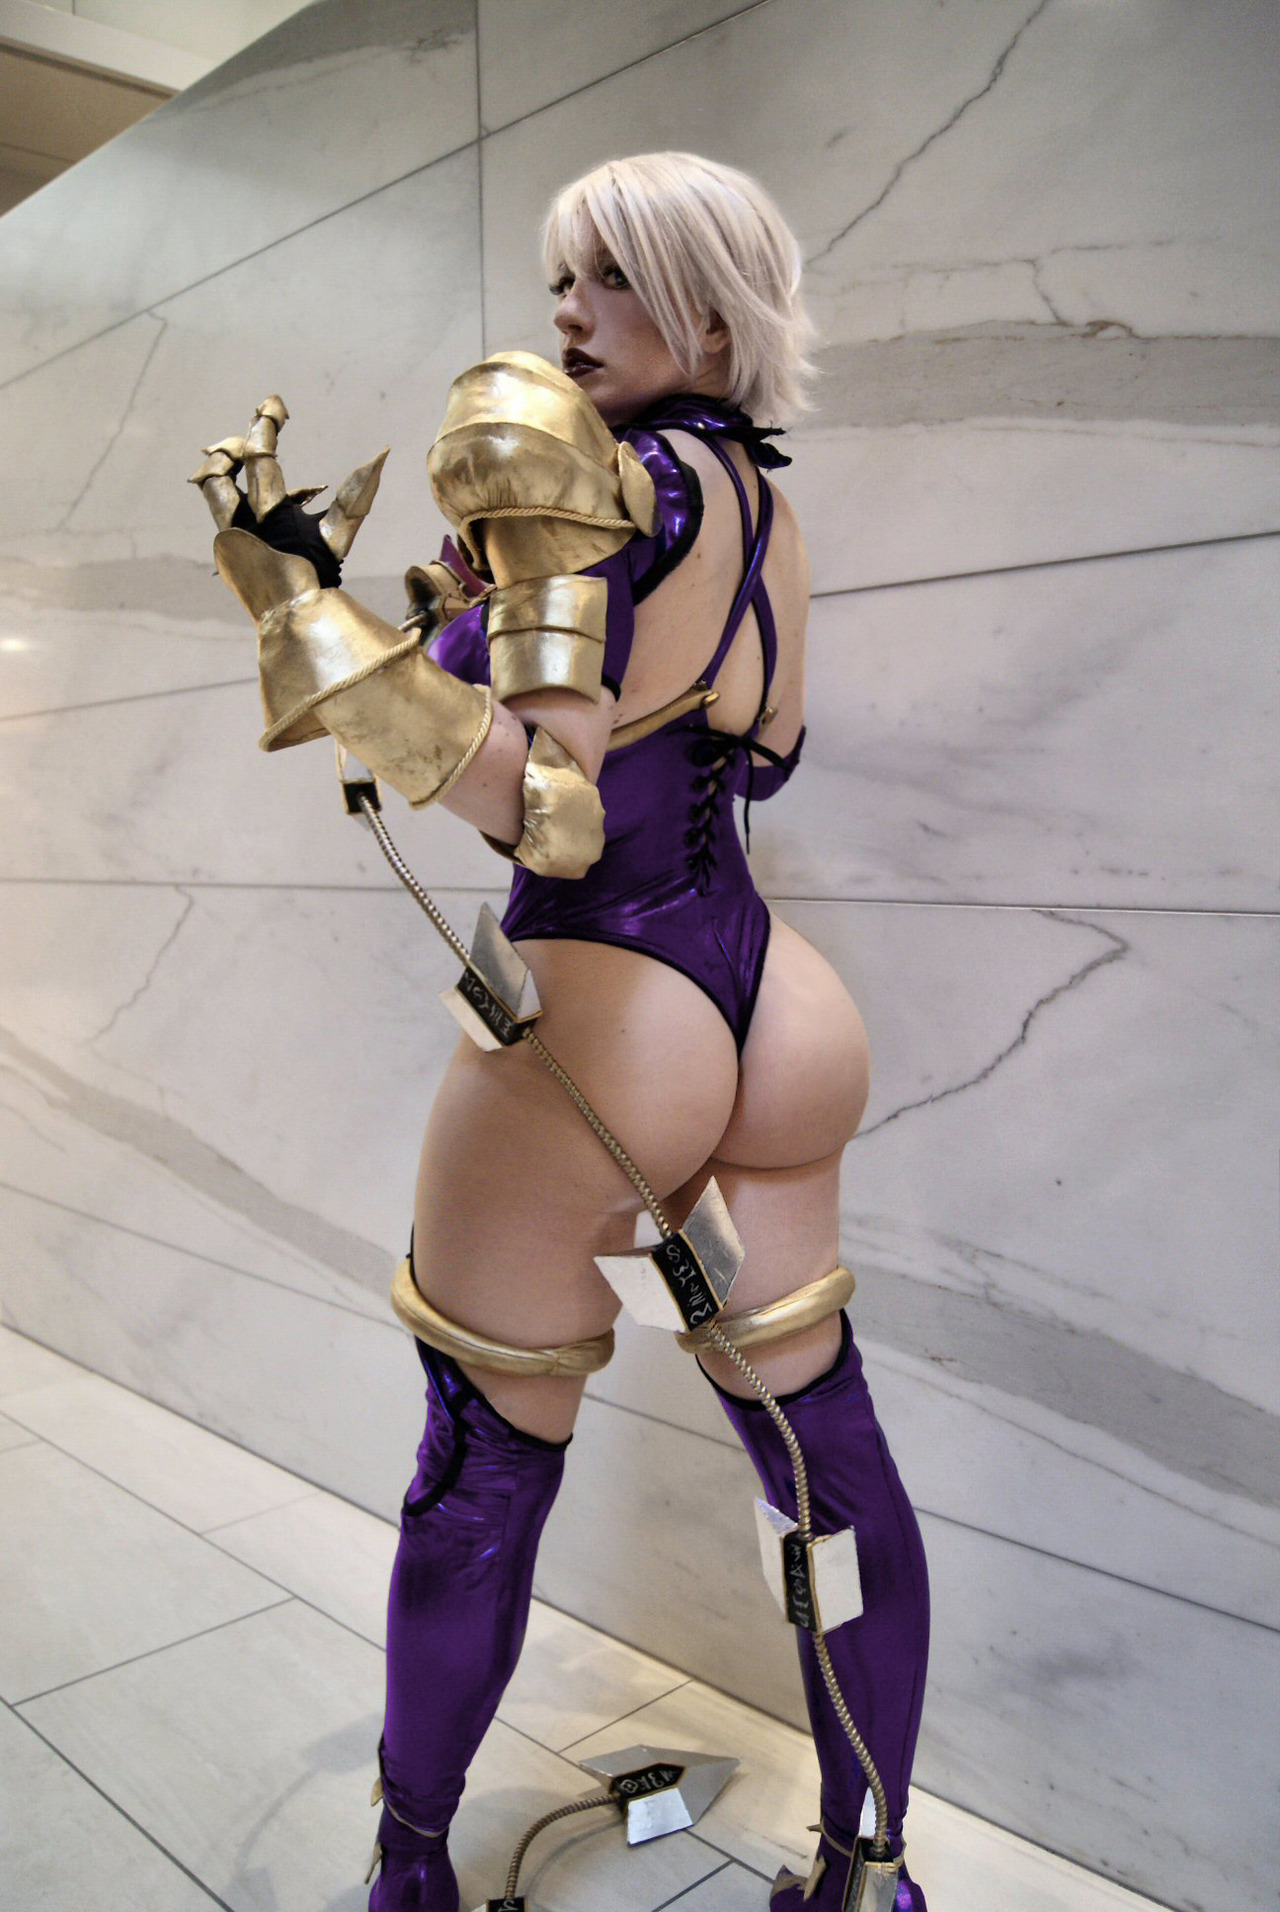 Big ass cosplay